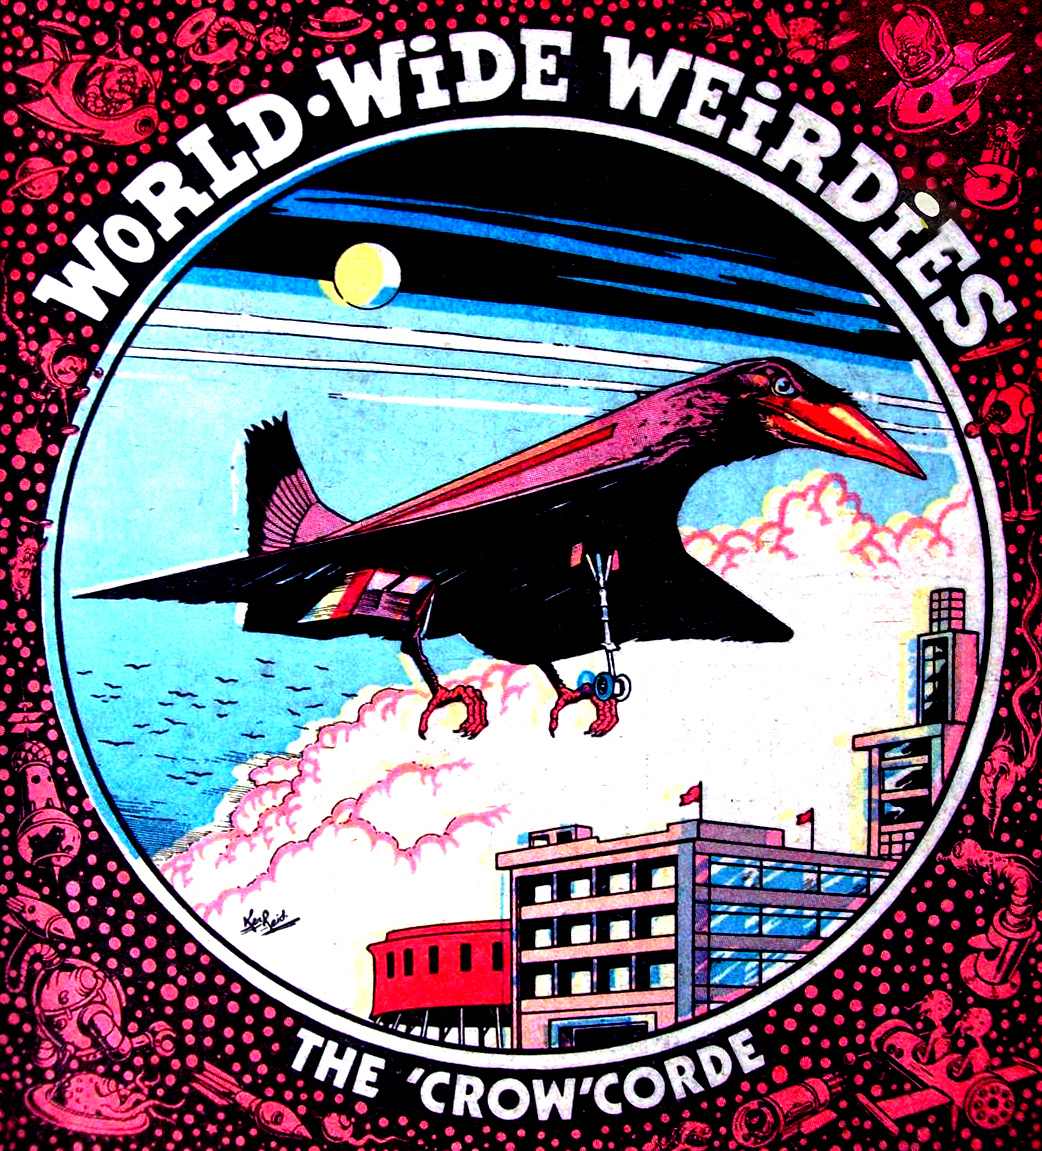 Ken Reid - World Wide Weirdies 09